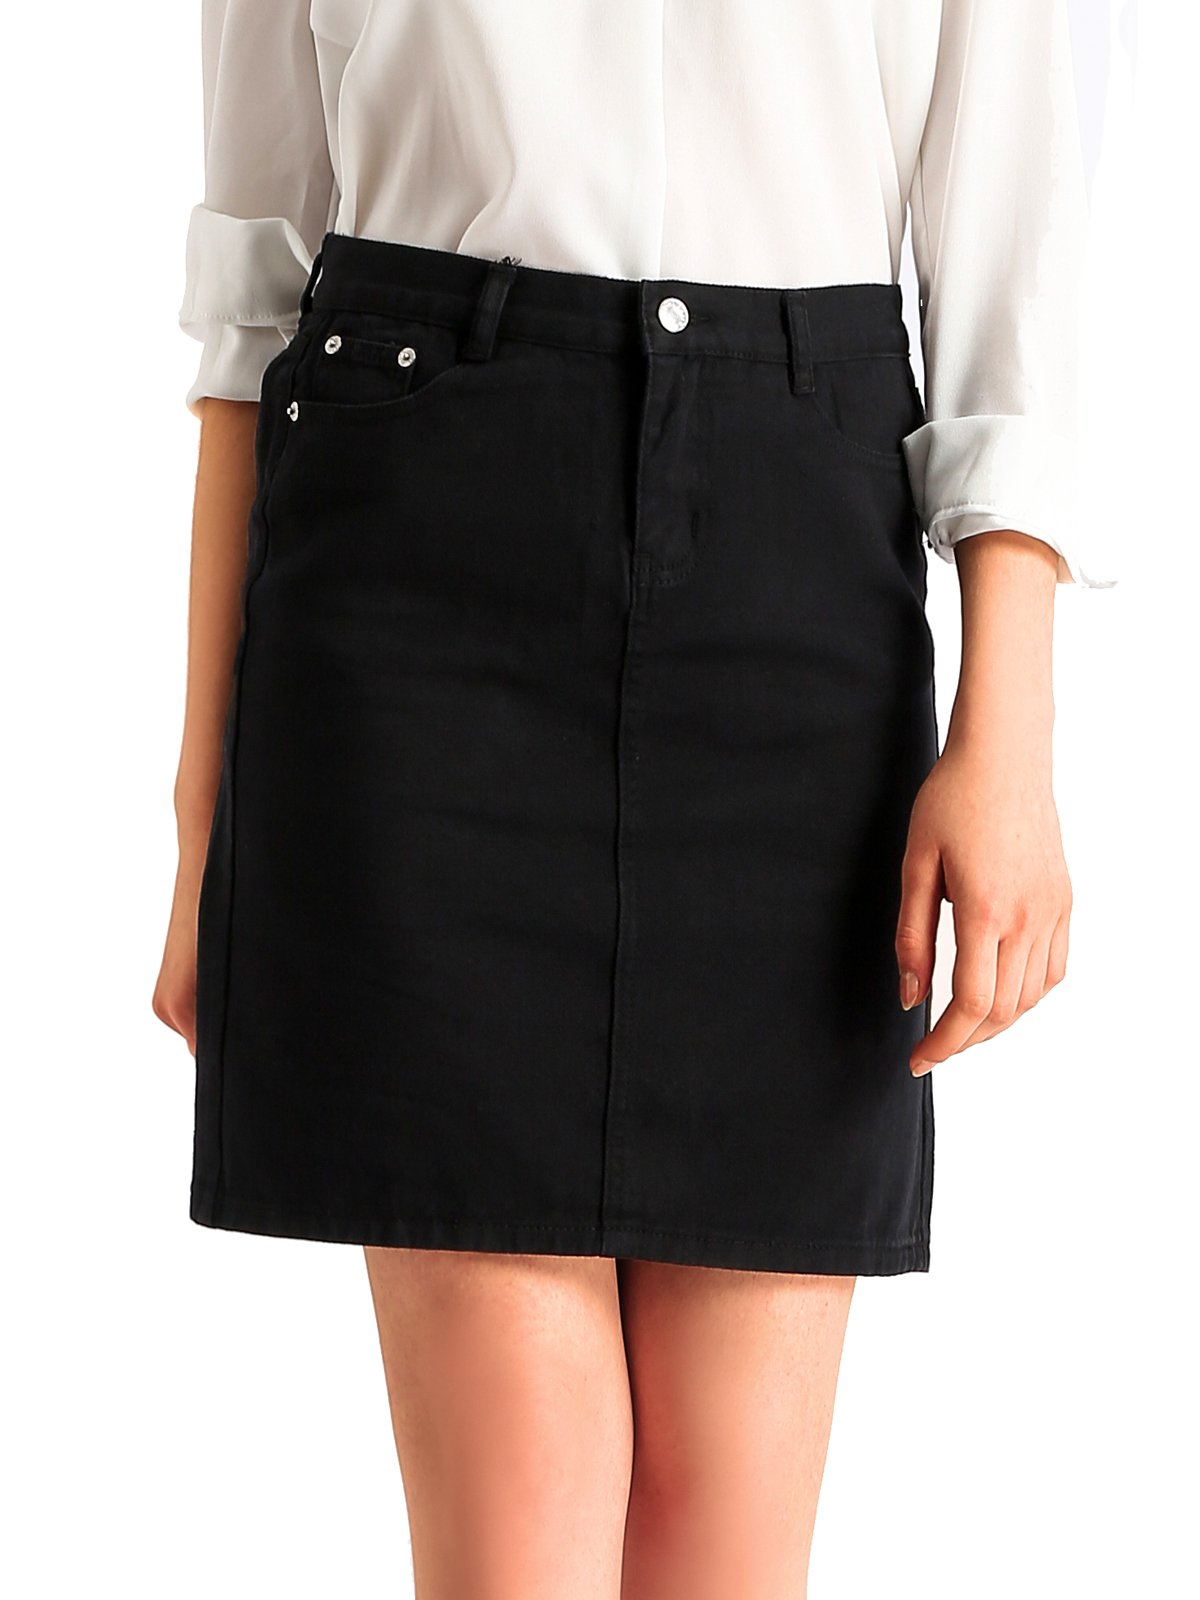 Beluring Womens Denim High Waisted Pencil Jeans Bodycon Skirts Black Size 6